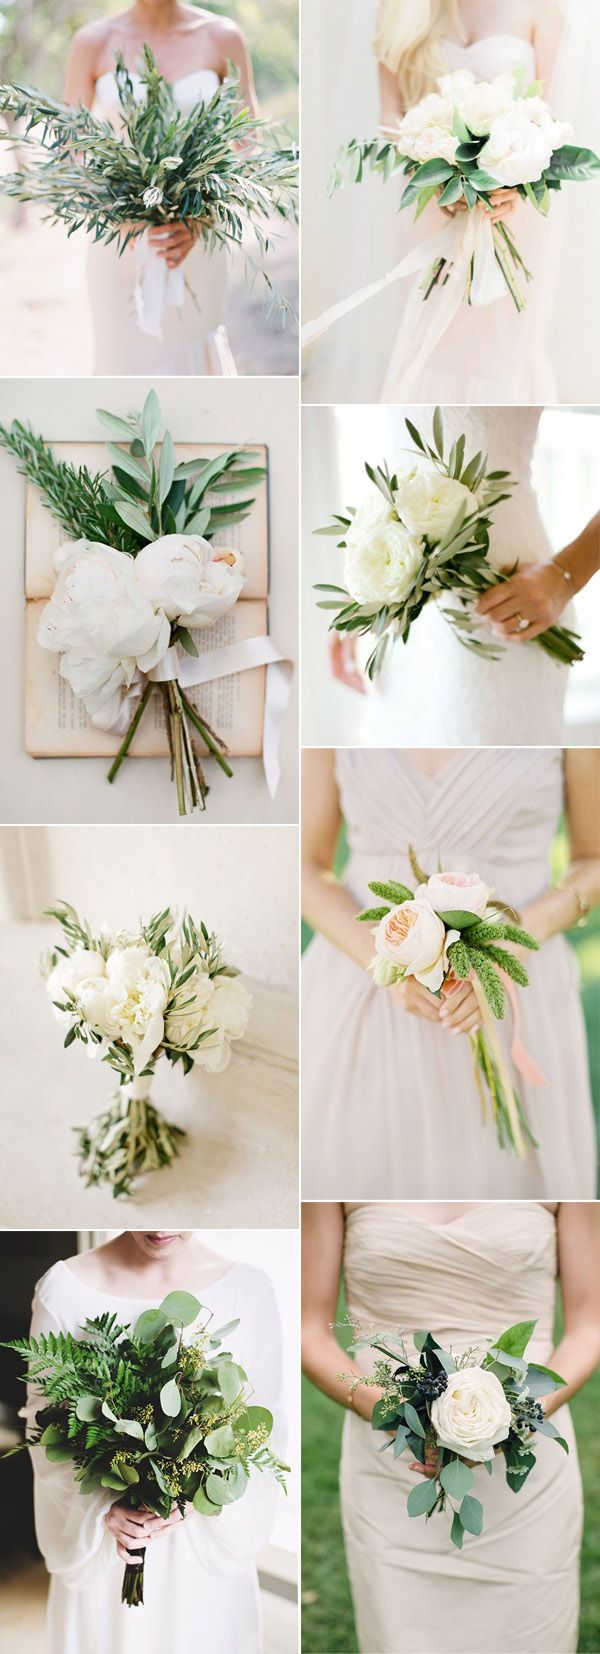 2017 2018 Trends Easy Diy Organic Minimalist Wedding Ideas